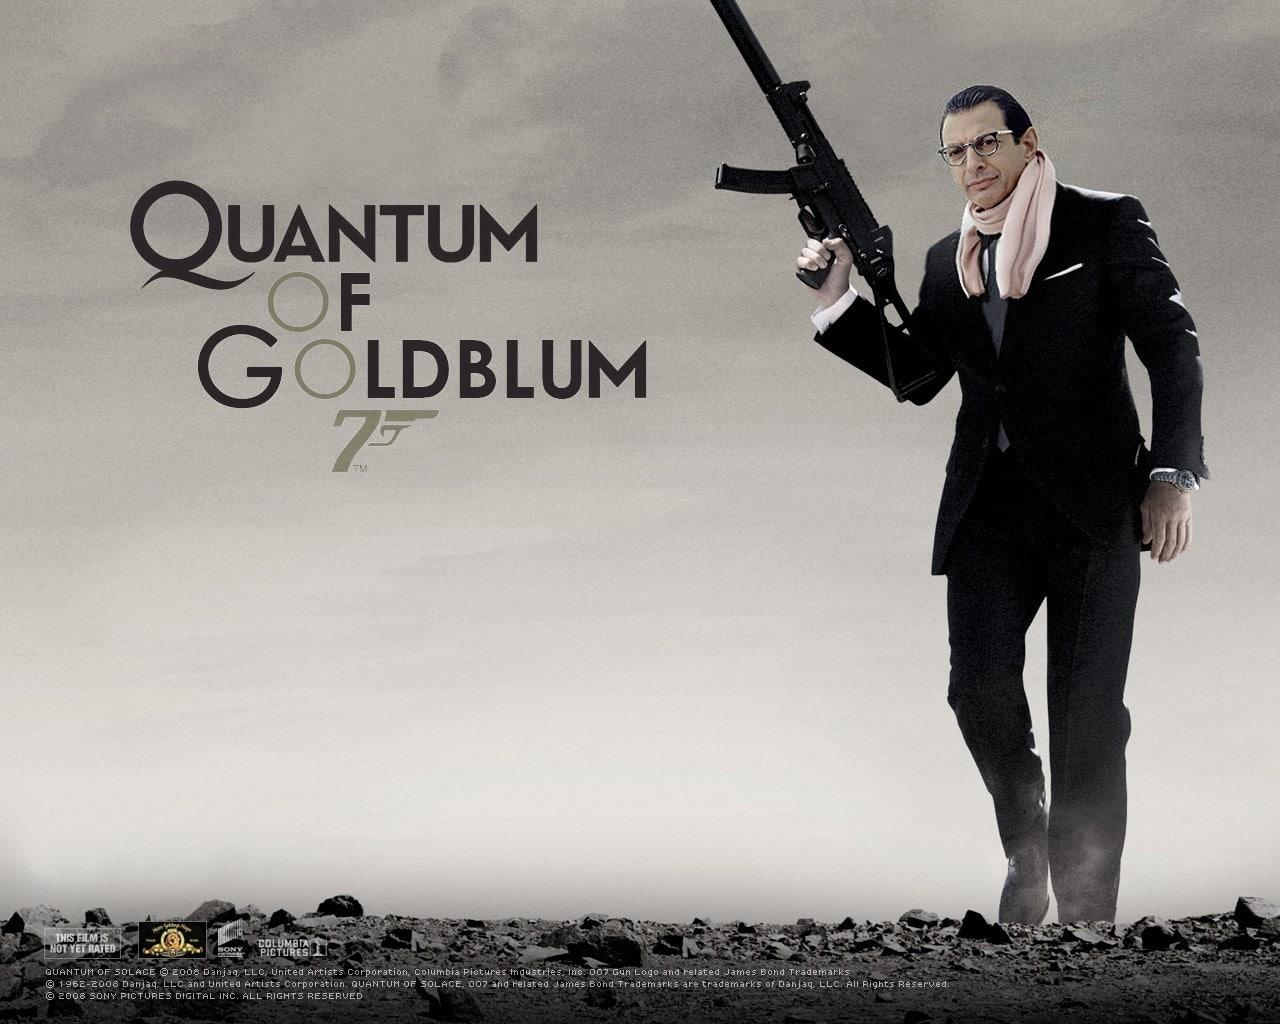 HD wallpaper: jeff goldblum quantum of solace actors 1280x1024